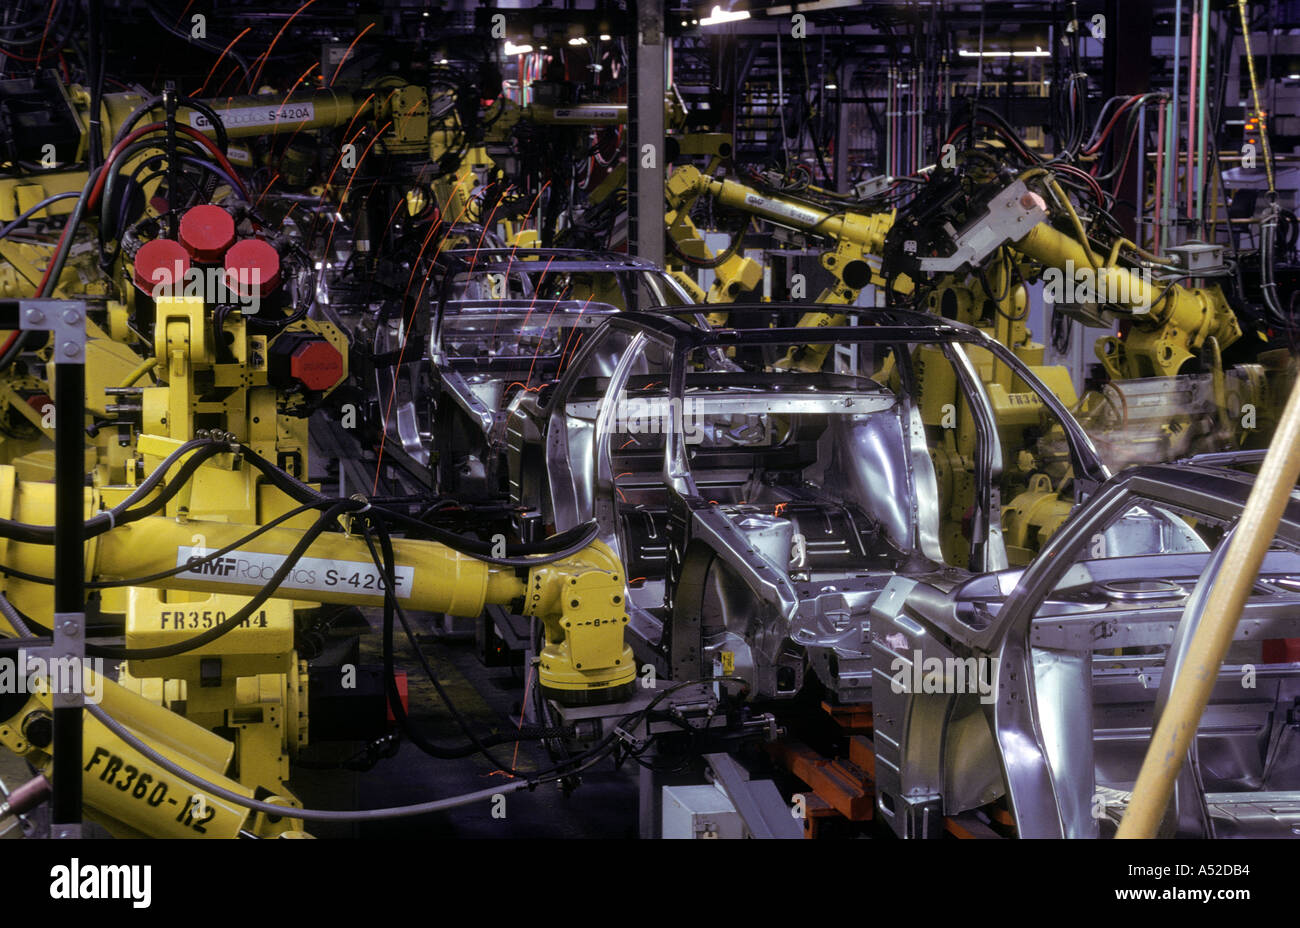 welding robots in use at automobile assembly plant in Ohio - Stock Image